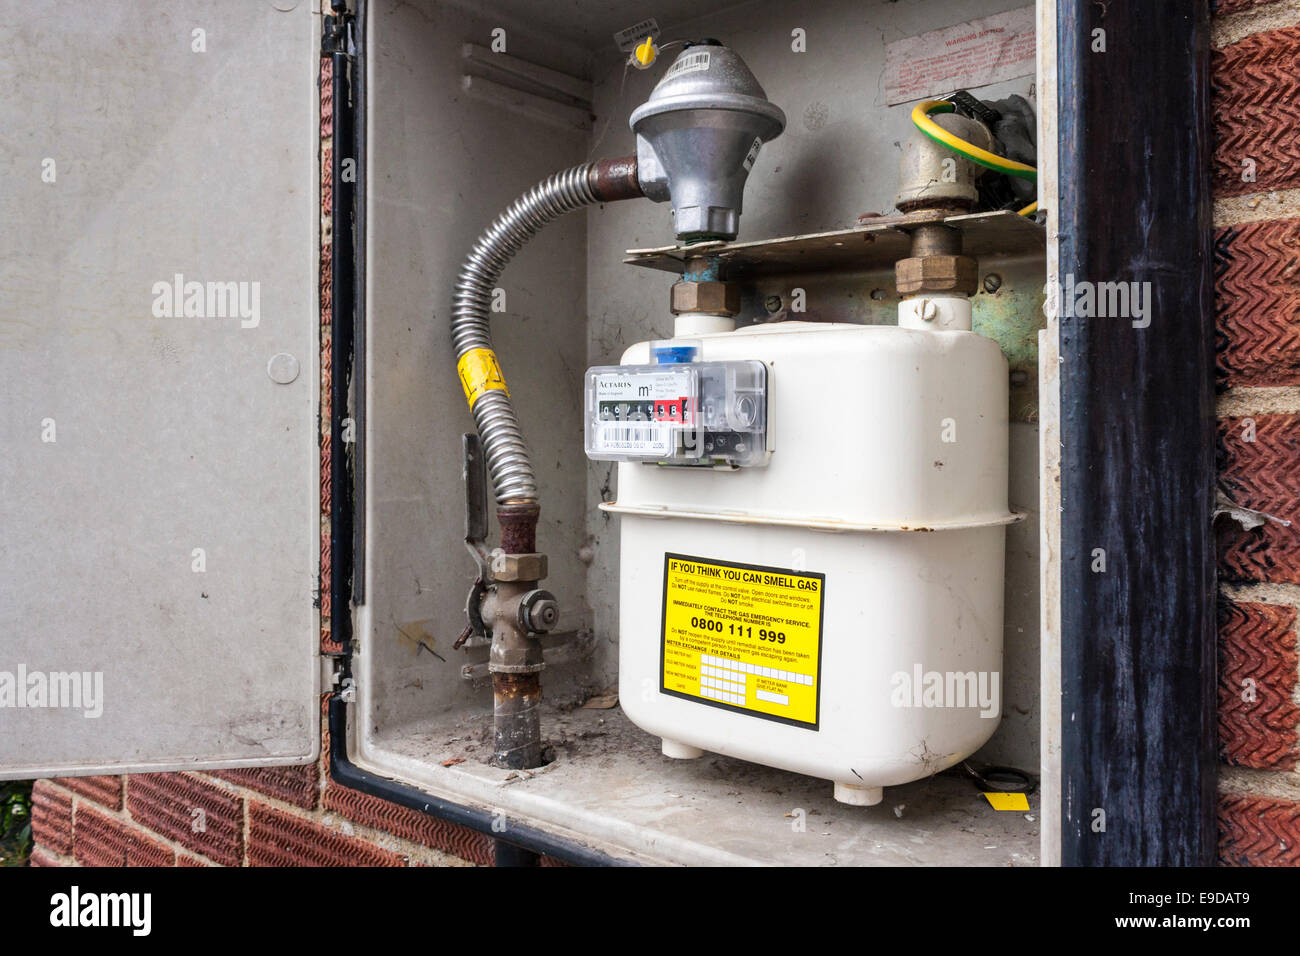 Gas Meter For A Domestic Gas Supply In Cupboard On Wall